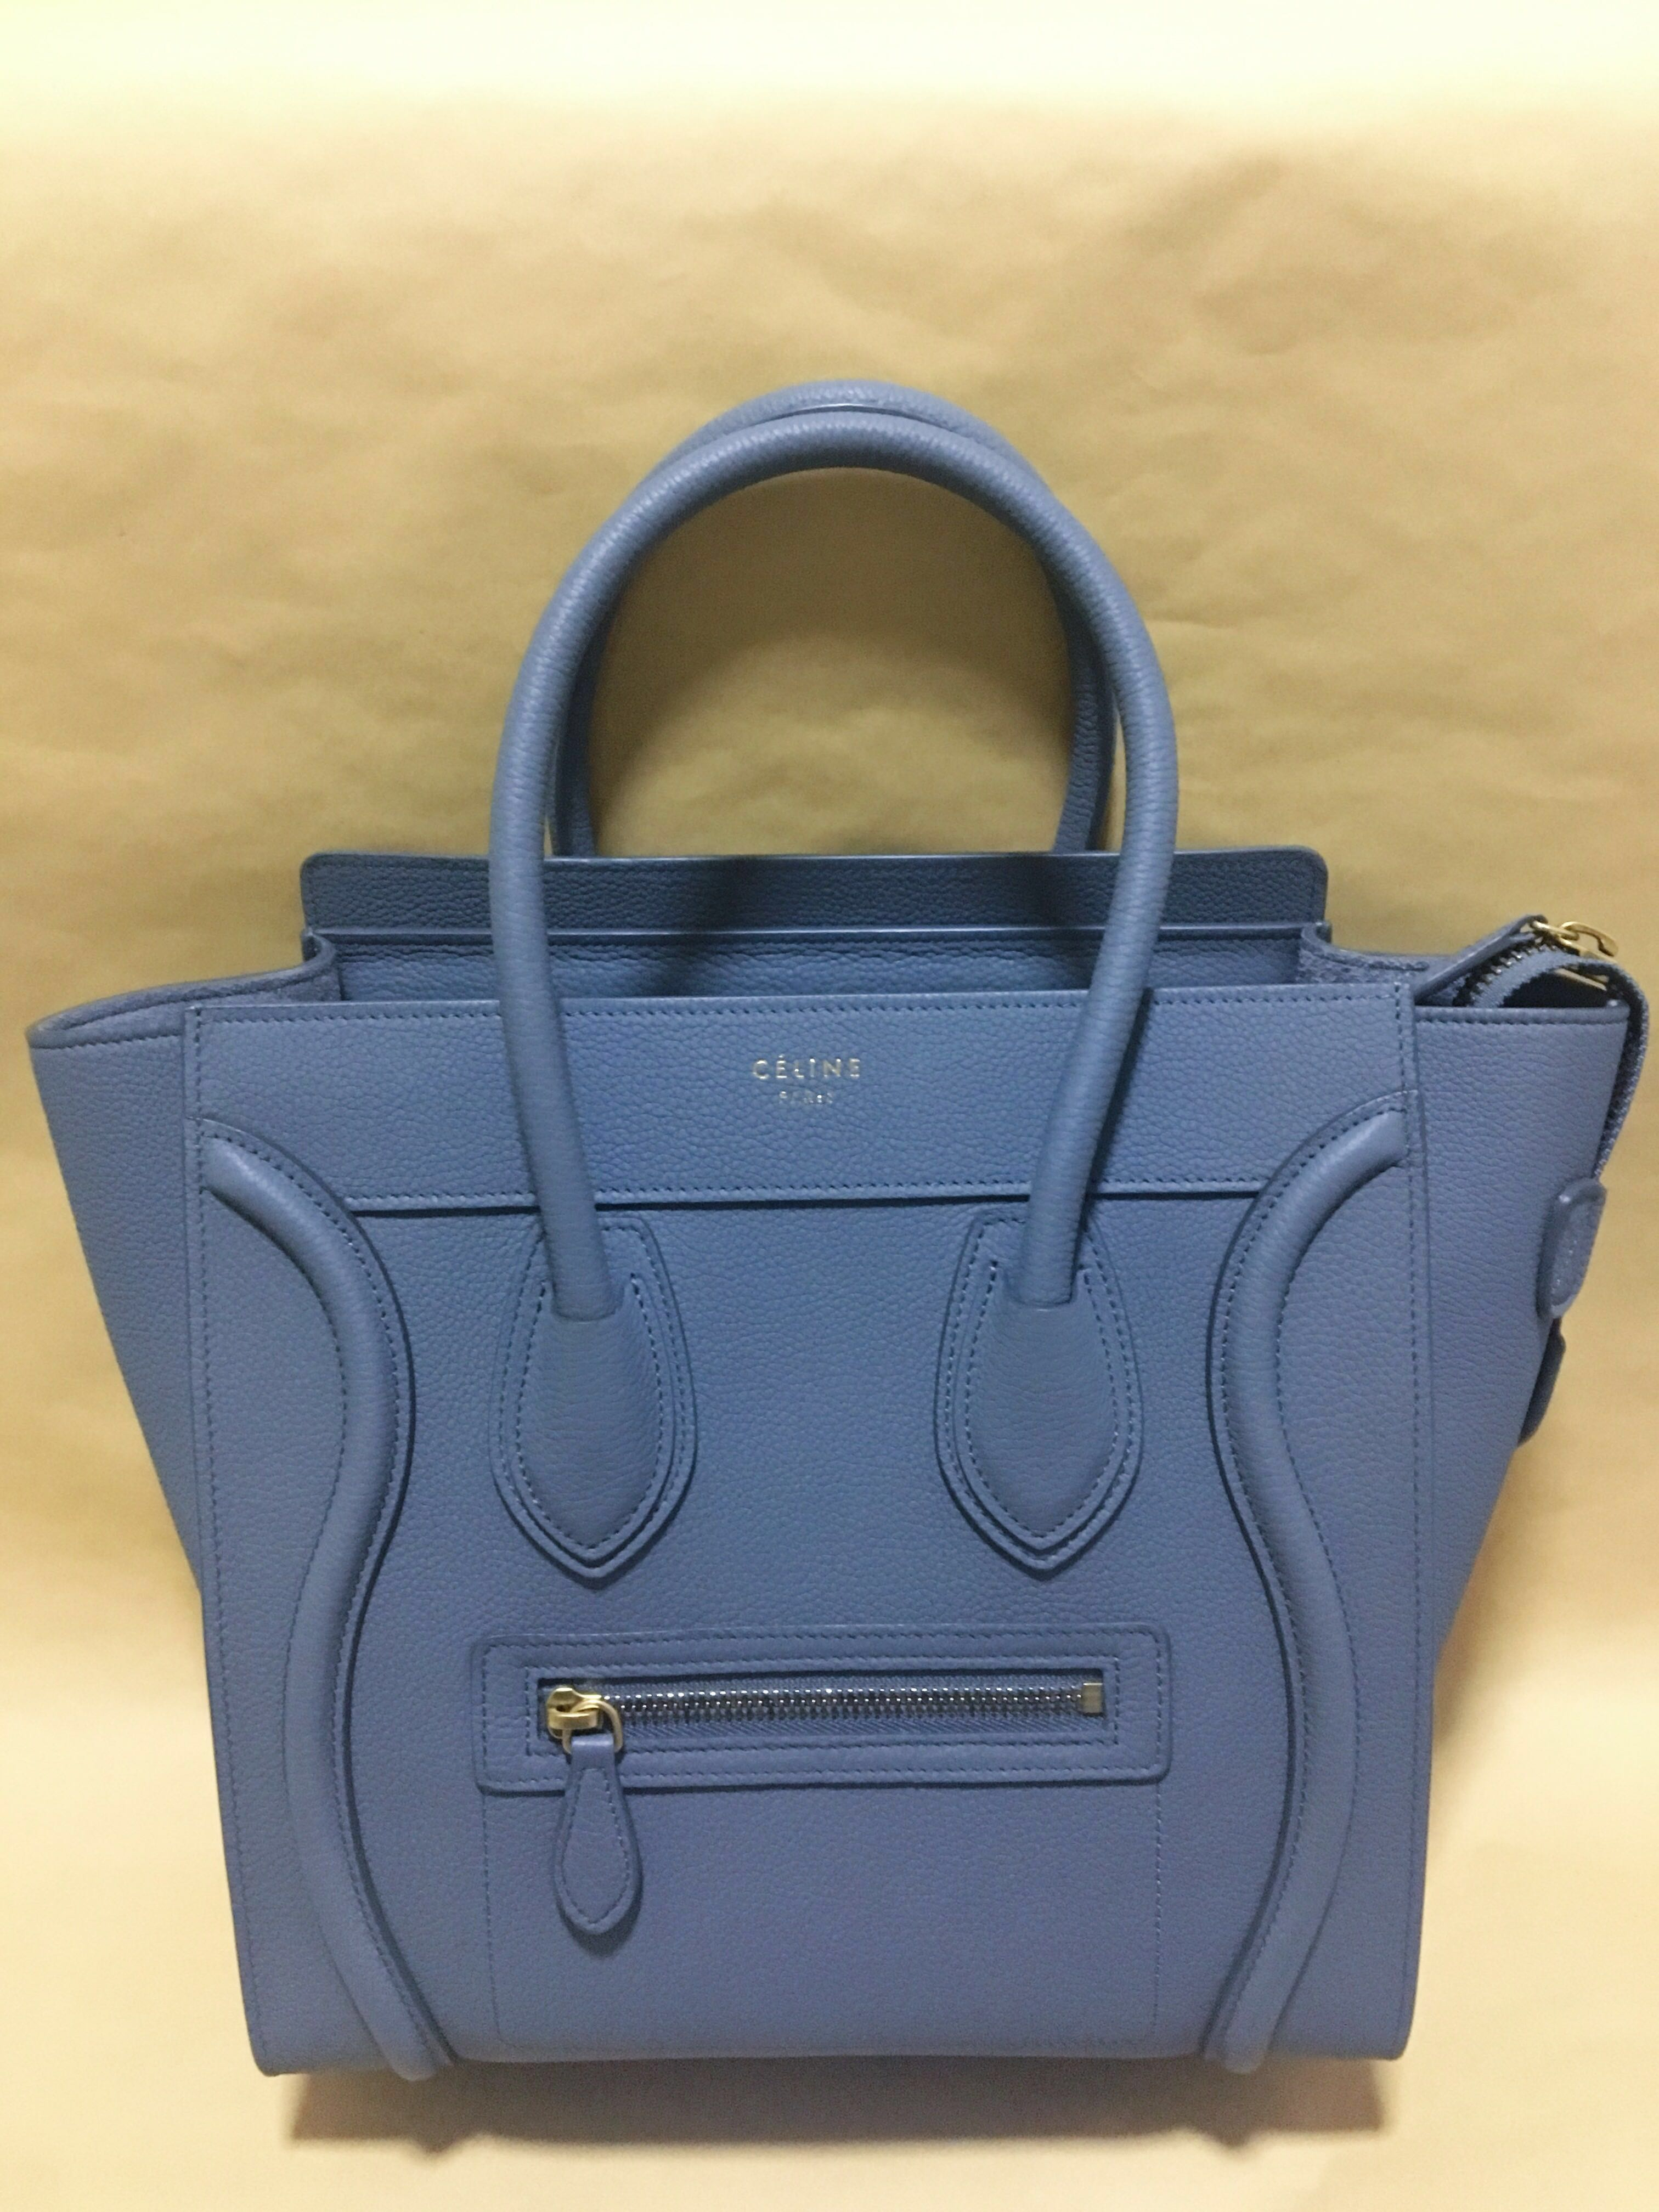 4d90e3a479 Celine Micro Luggage in Kohl